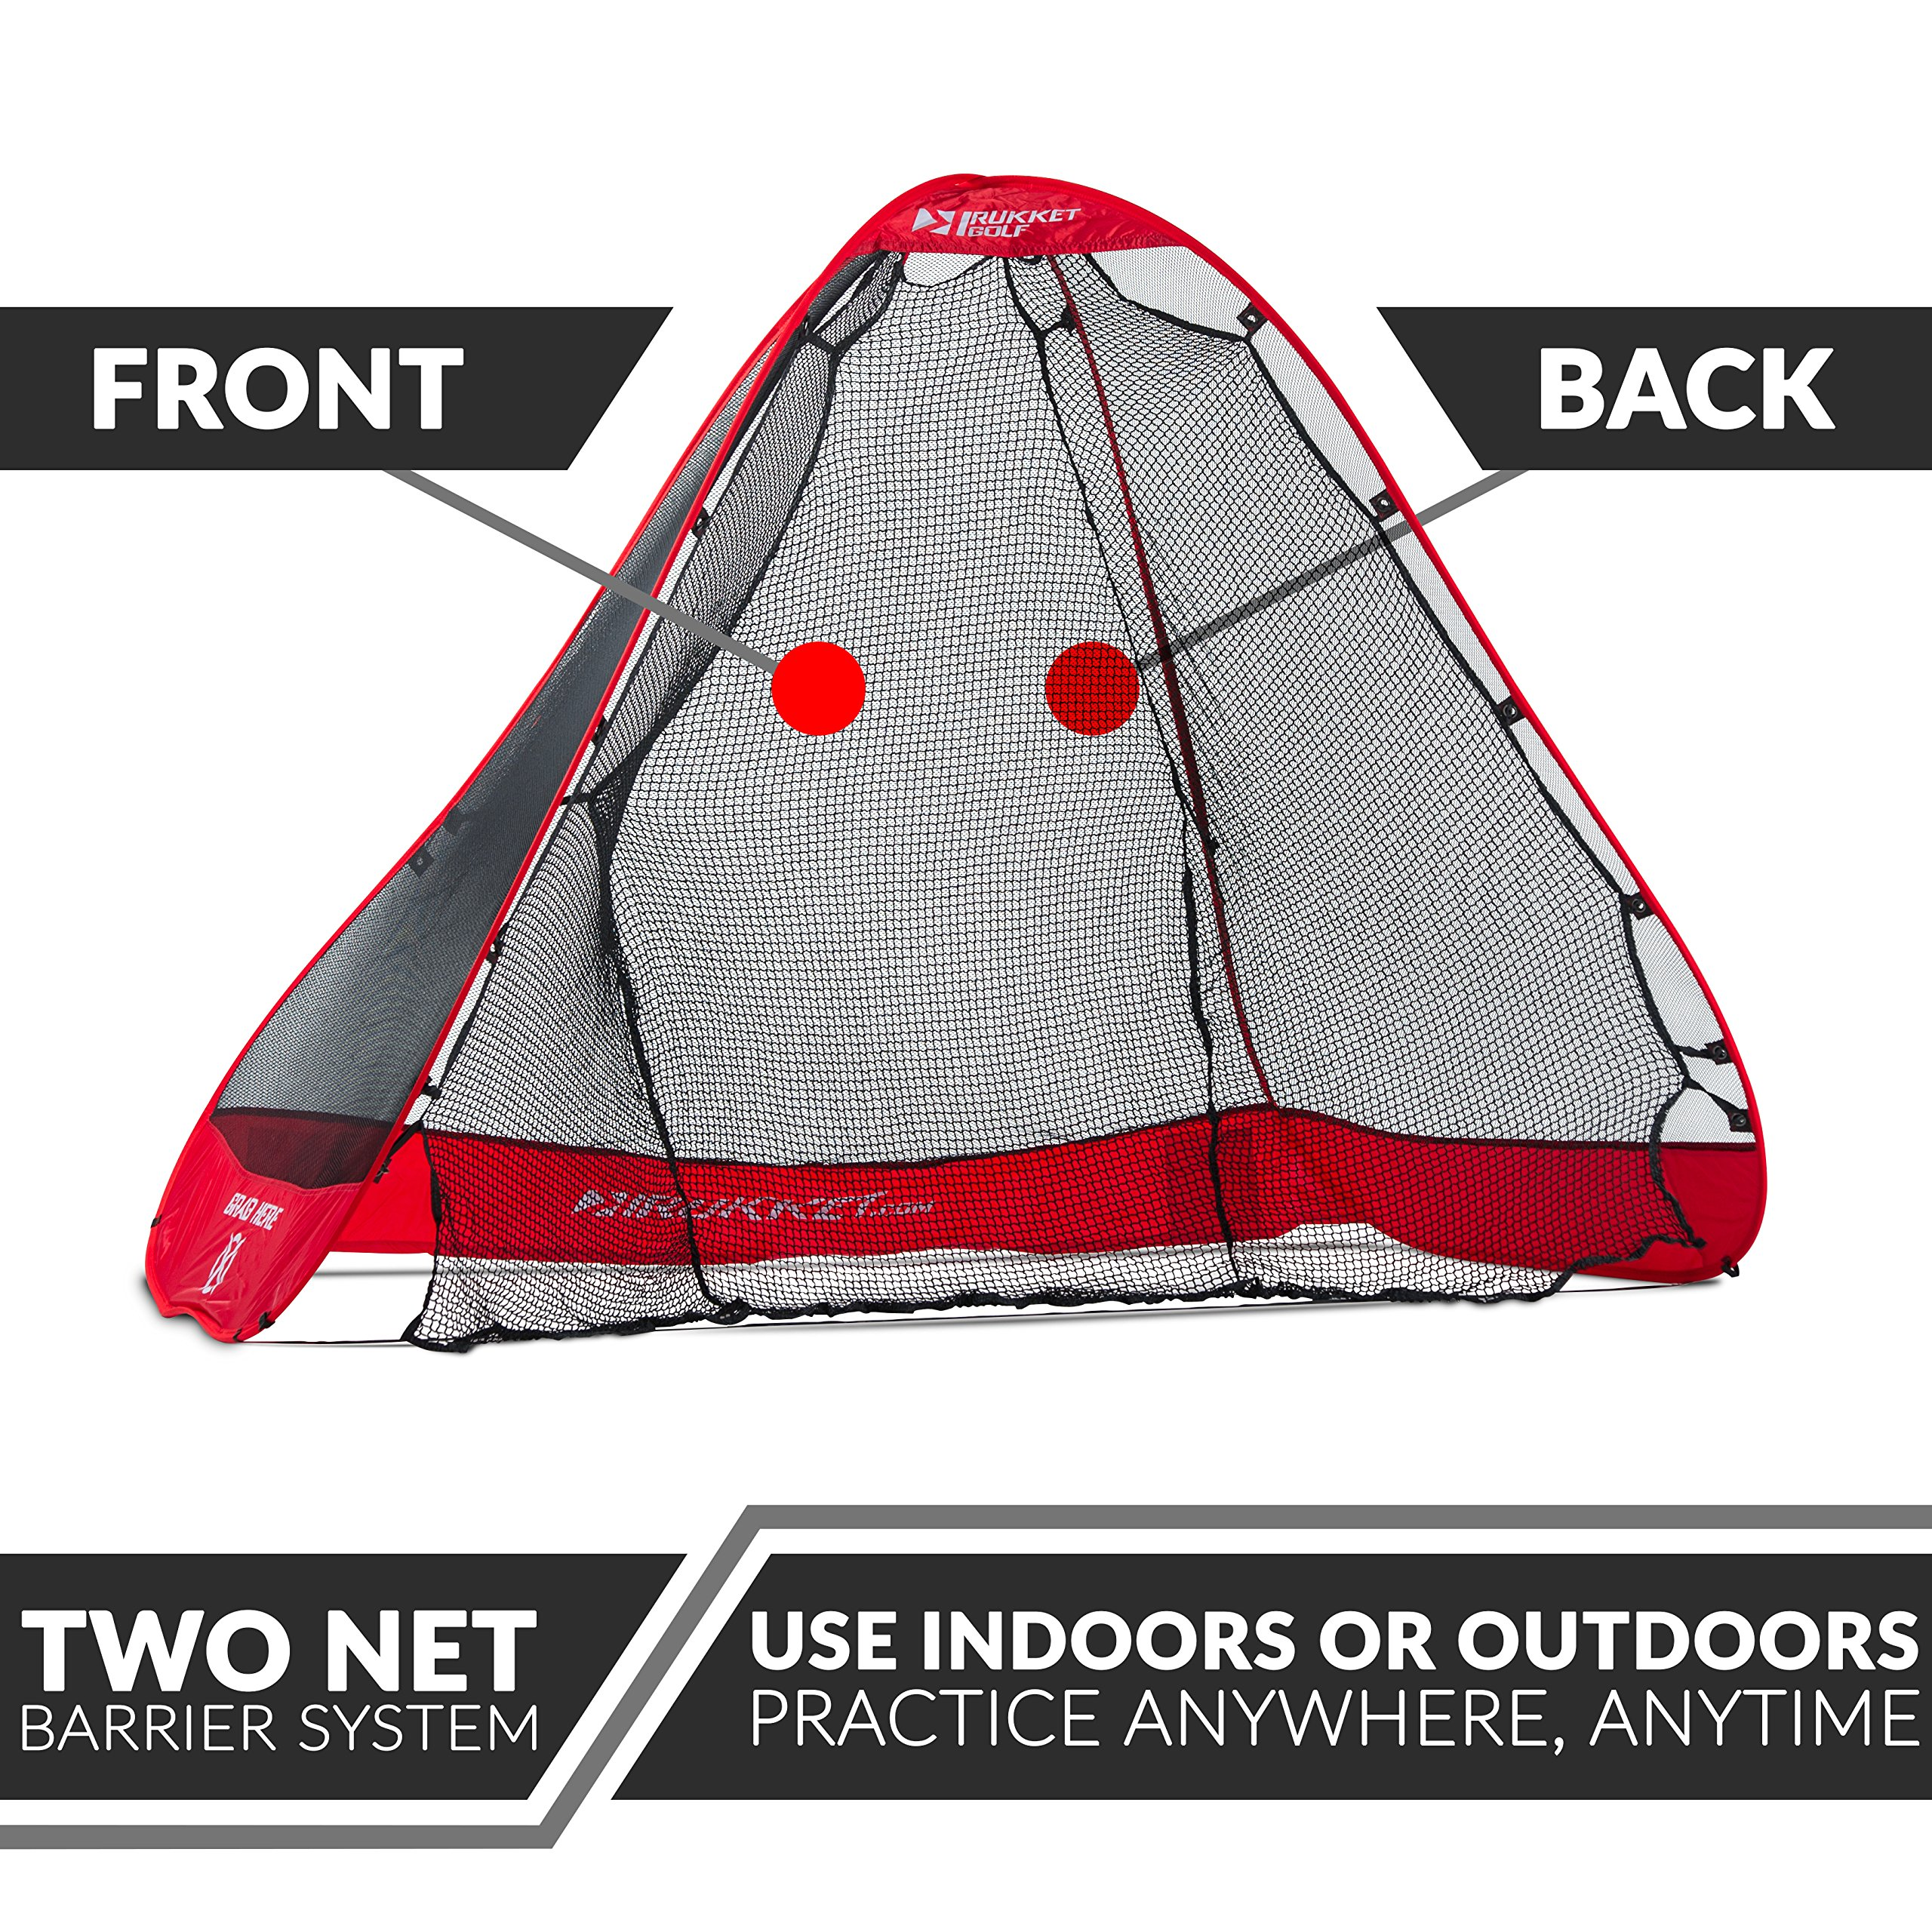 Rukket 4pc Golf Bundle | 10x7ft Portable Driving Net | Chipping Target | Tri-Turf Hitting Mat | Carry Bag | Practice Outdoor and Indoor by Rukket Sports (Image #3)